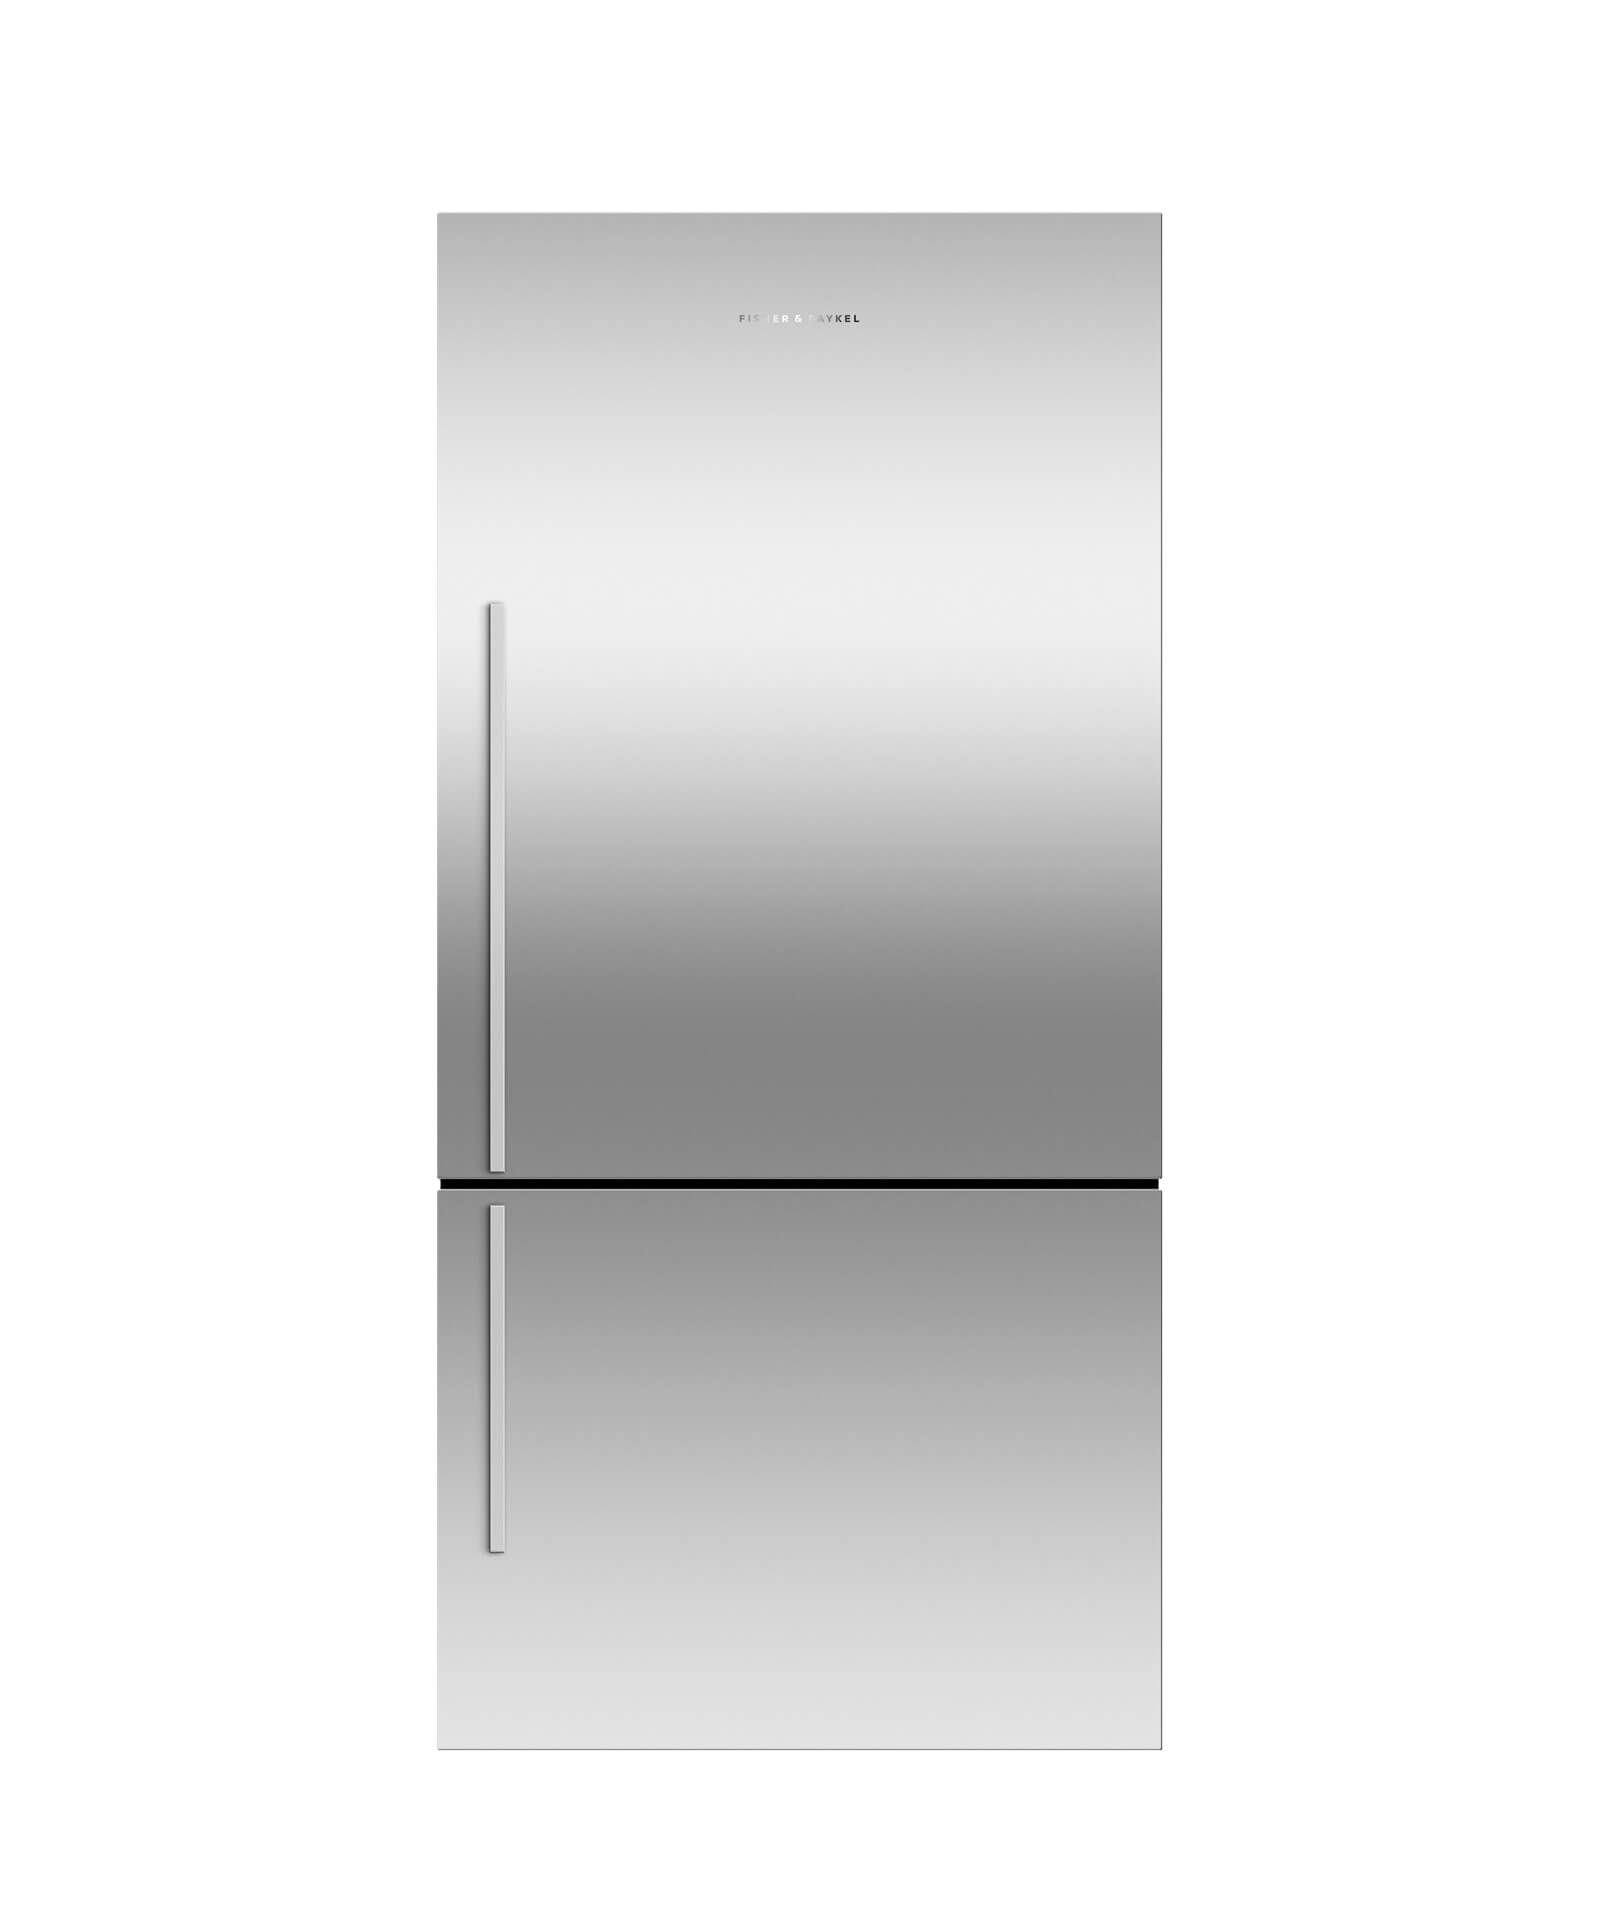 E522BRXFD4 - ActiveSmart™ Fridge - 790mm Bottom Freezer 473L - 25156